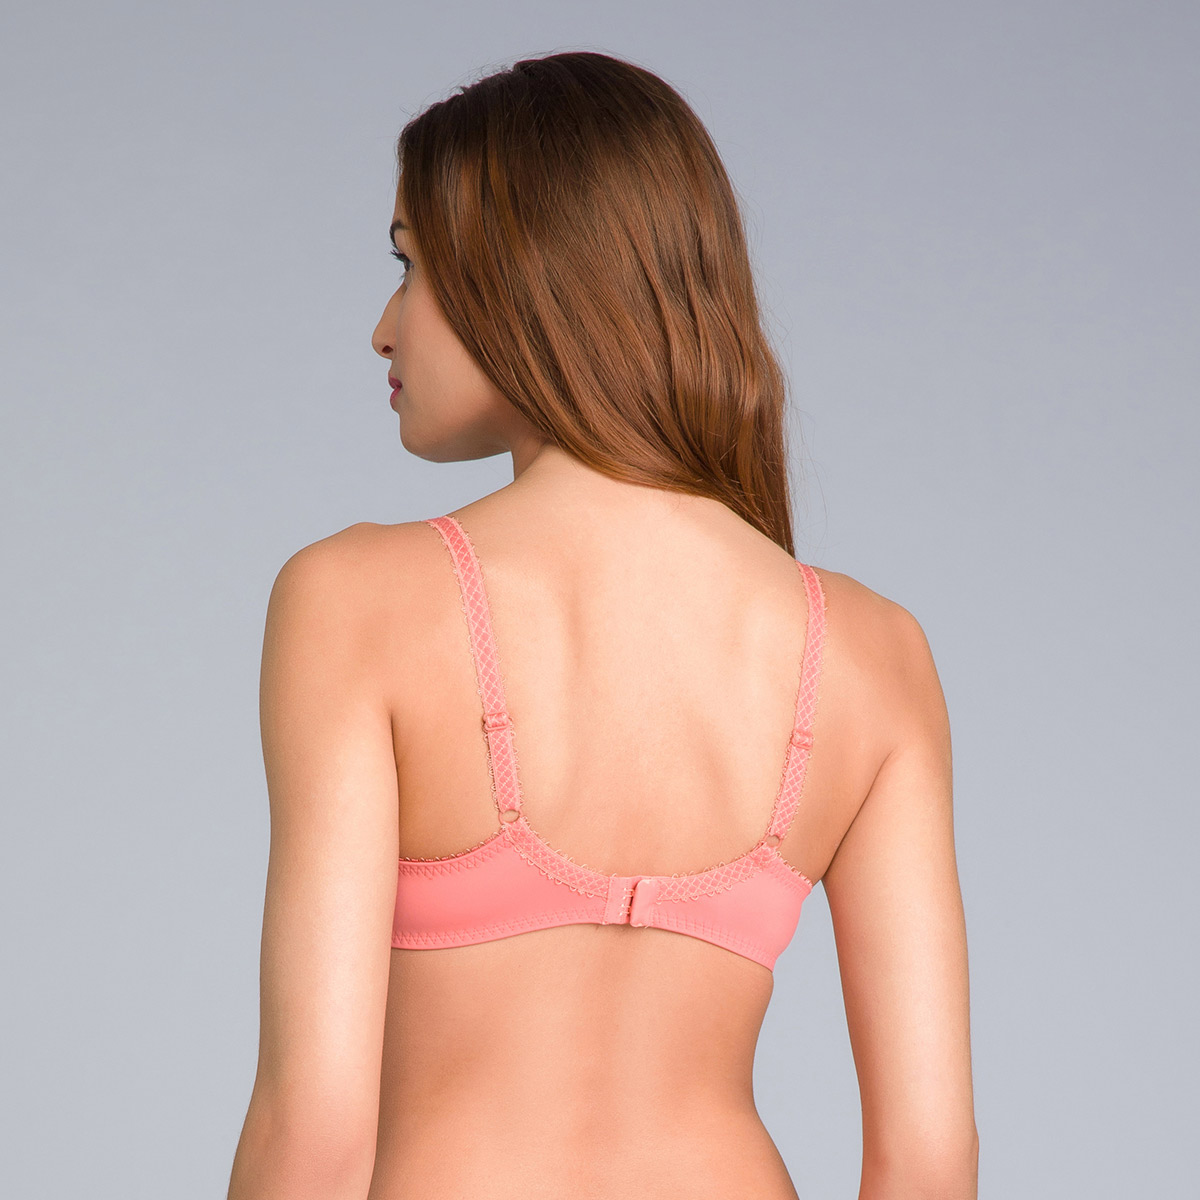 Soutien-gorge emboîtant dentelle orange cannelle - Flower Elegance, , PLAYTEX